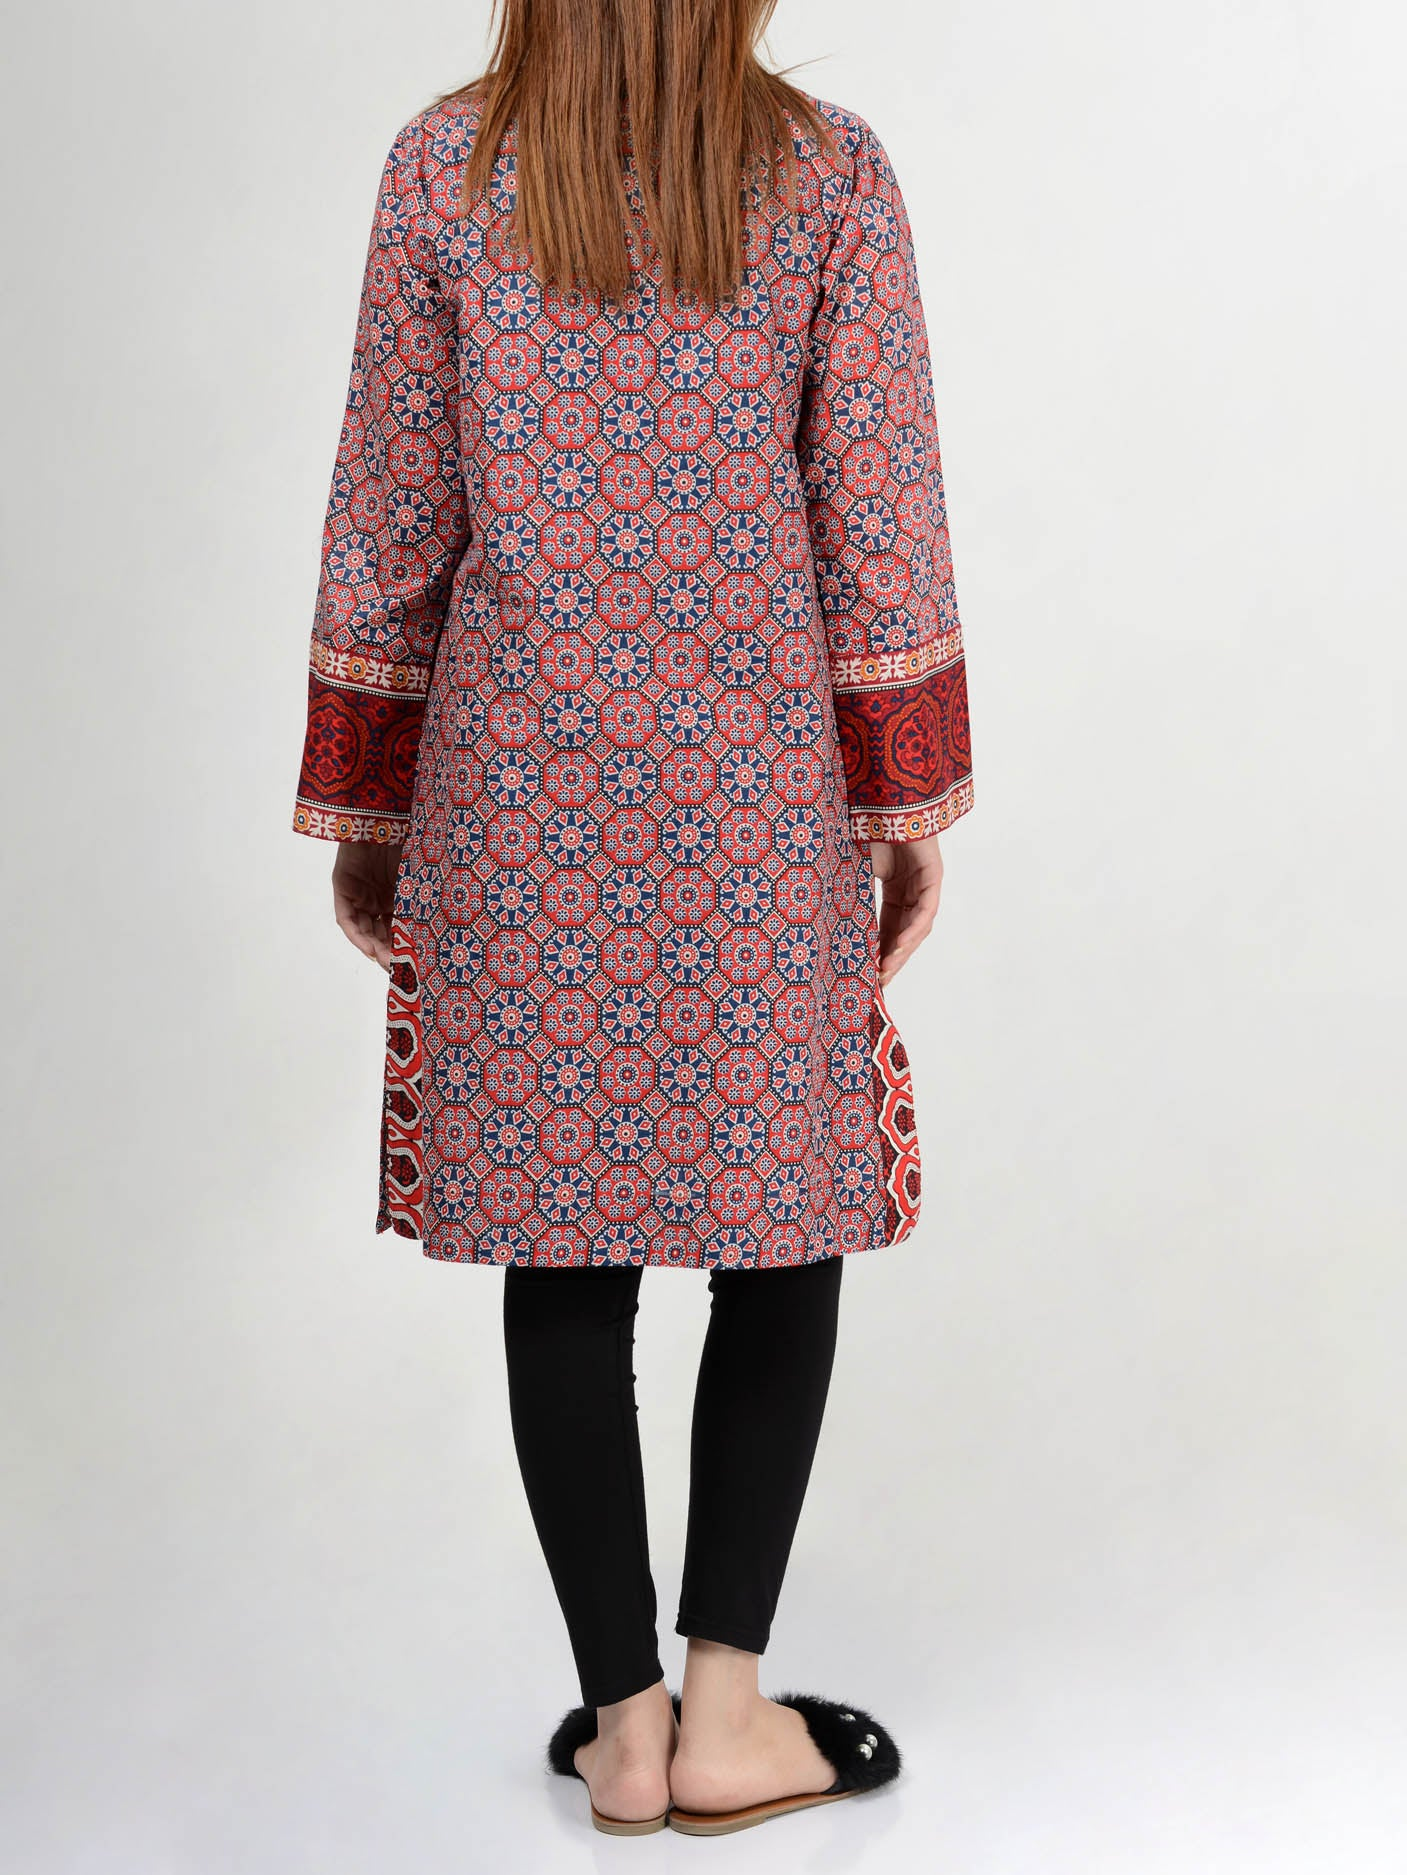 Limelight Embroidered Lawn Shirt P0114 Online